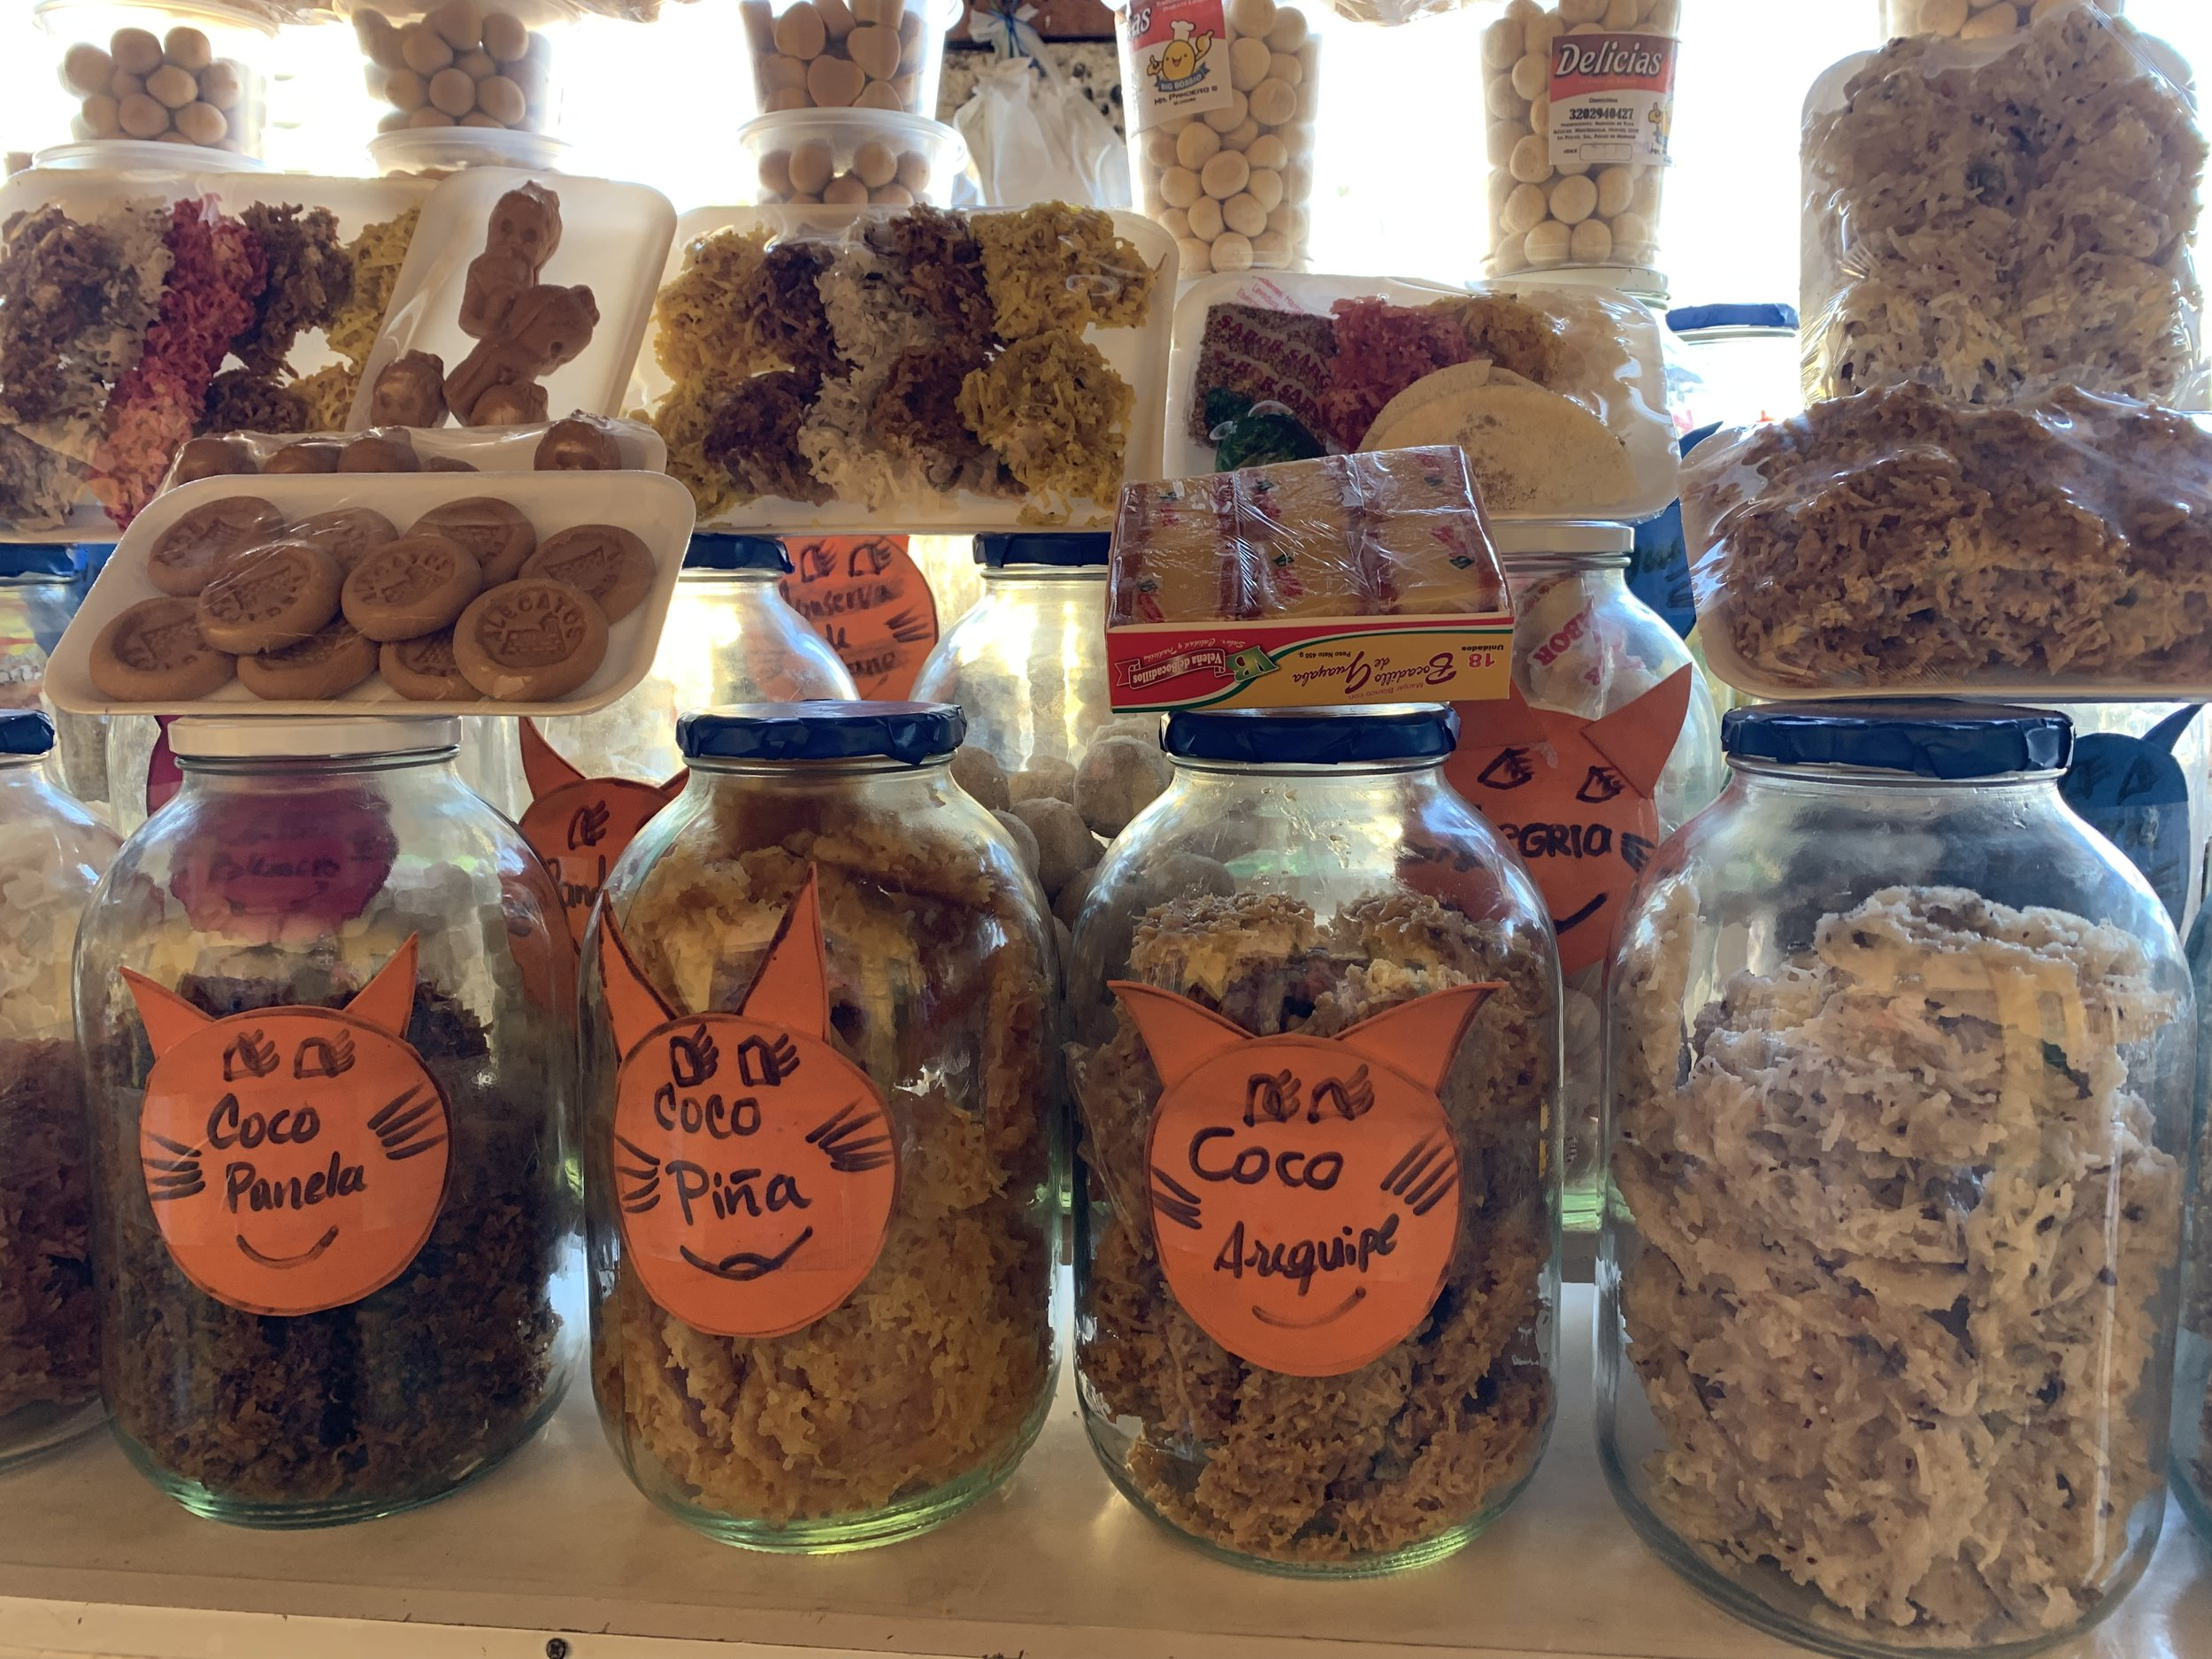 A sampling of homemade dried and sugared fruits in different flavors, on sale in the marketplace near La Torre del Reloj (Clock Tower Gate).